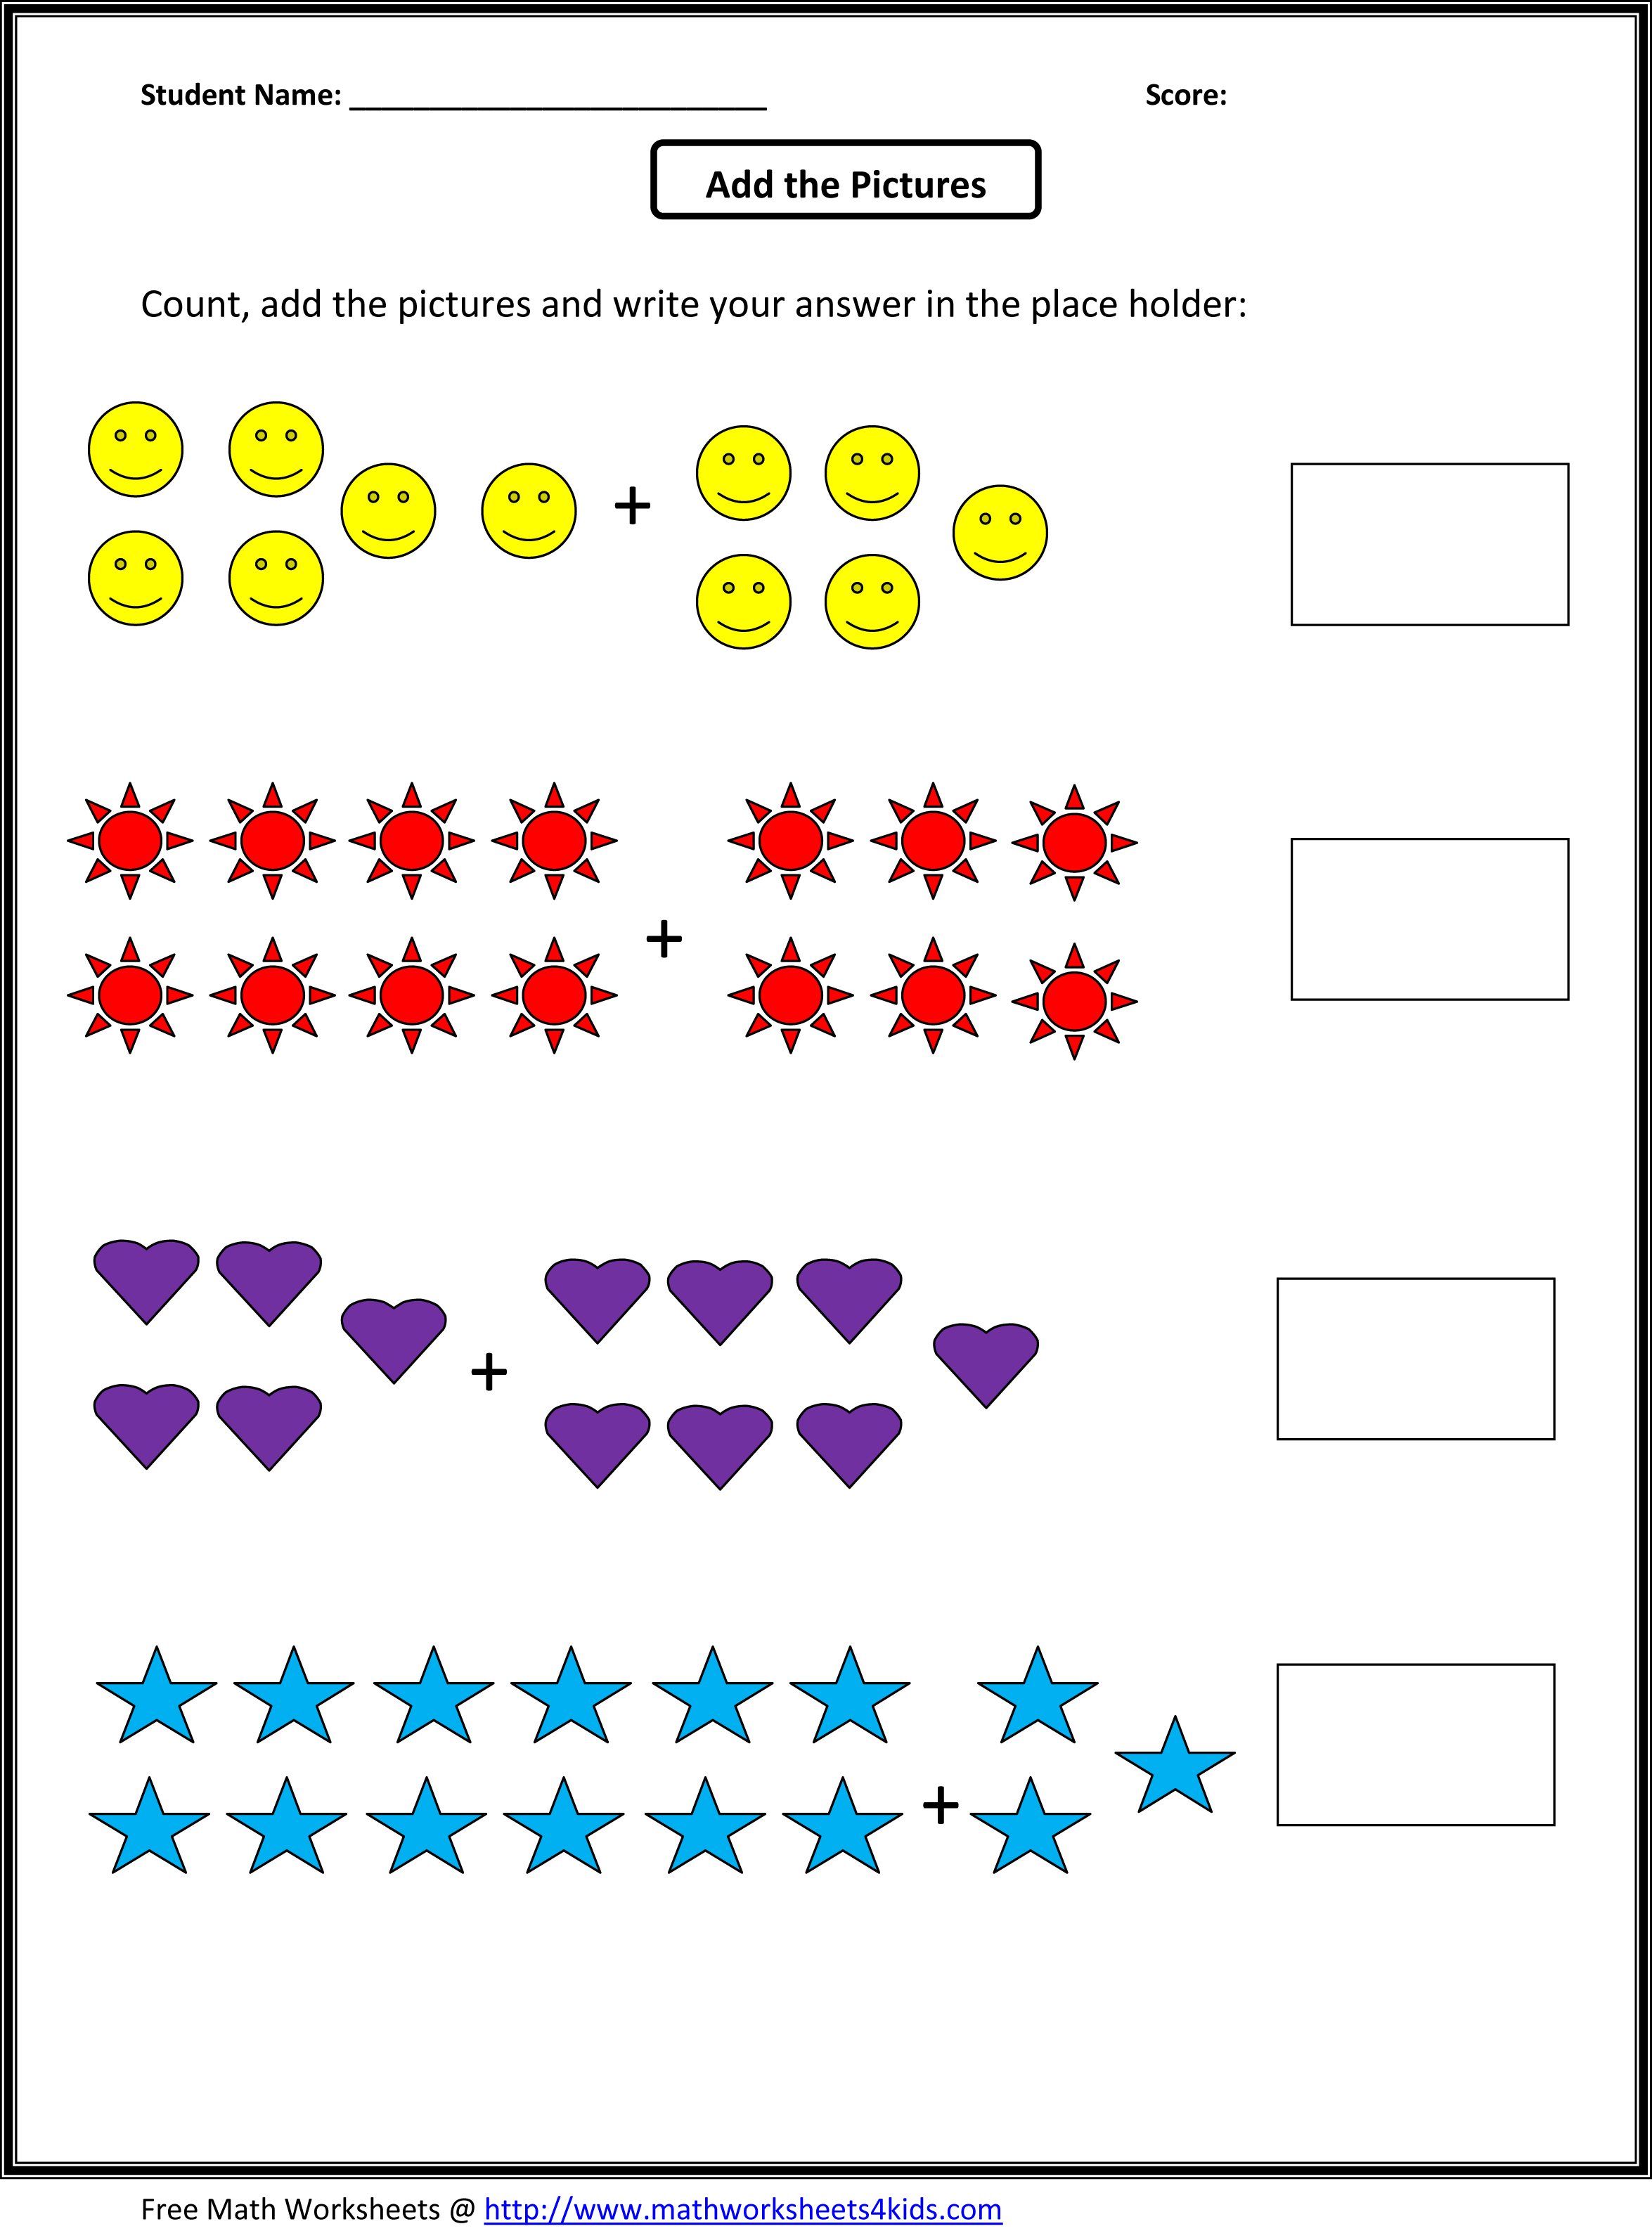 Weirdmailus  Scenic Grade  Maths Worksheet  Reocurent With Foxy Math Worksheets For St Grade Free  Reocurent With Enchanting Rhymes Worksheets Also Ks Printable Worksheets In Addition Problem Solving With Decimals Worksheets And Free Rounding Decimals Worksheets As Well As Multidigit Addition And Subtraction Worksheets Additionally Reading Comprehension Kindergarten Worksheets Free From Reocurentcom With Weirdmailus  Foxy Grade  Maths Worksheet  Reocurent With Enchanting Math Worksheets For St Grade Free  Reocurent And Scenic Rhymes Worksheets Also Ks Printable Worksheets In Addition Problem Solving With Decimals Worksheets From Reocurentcom